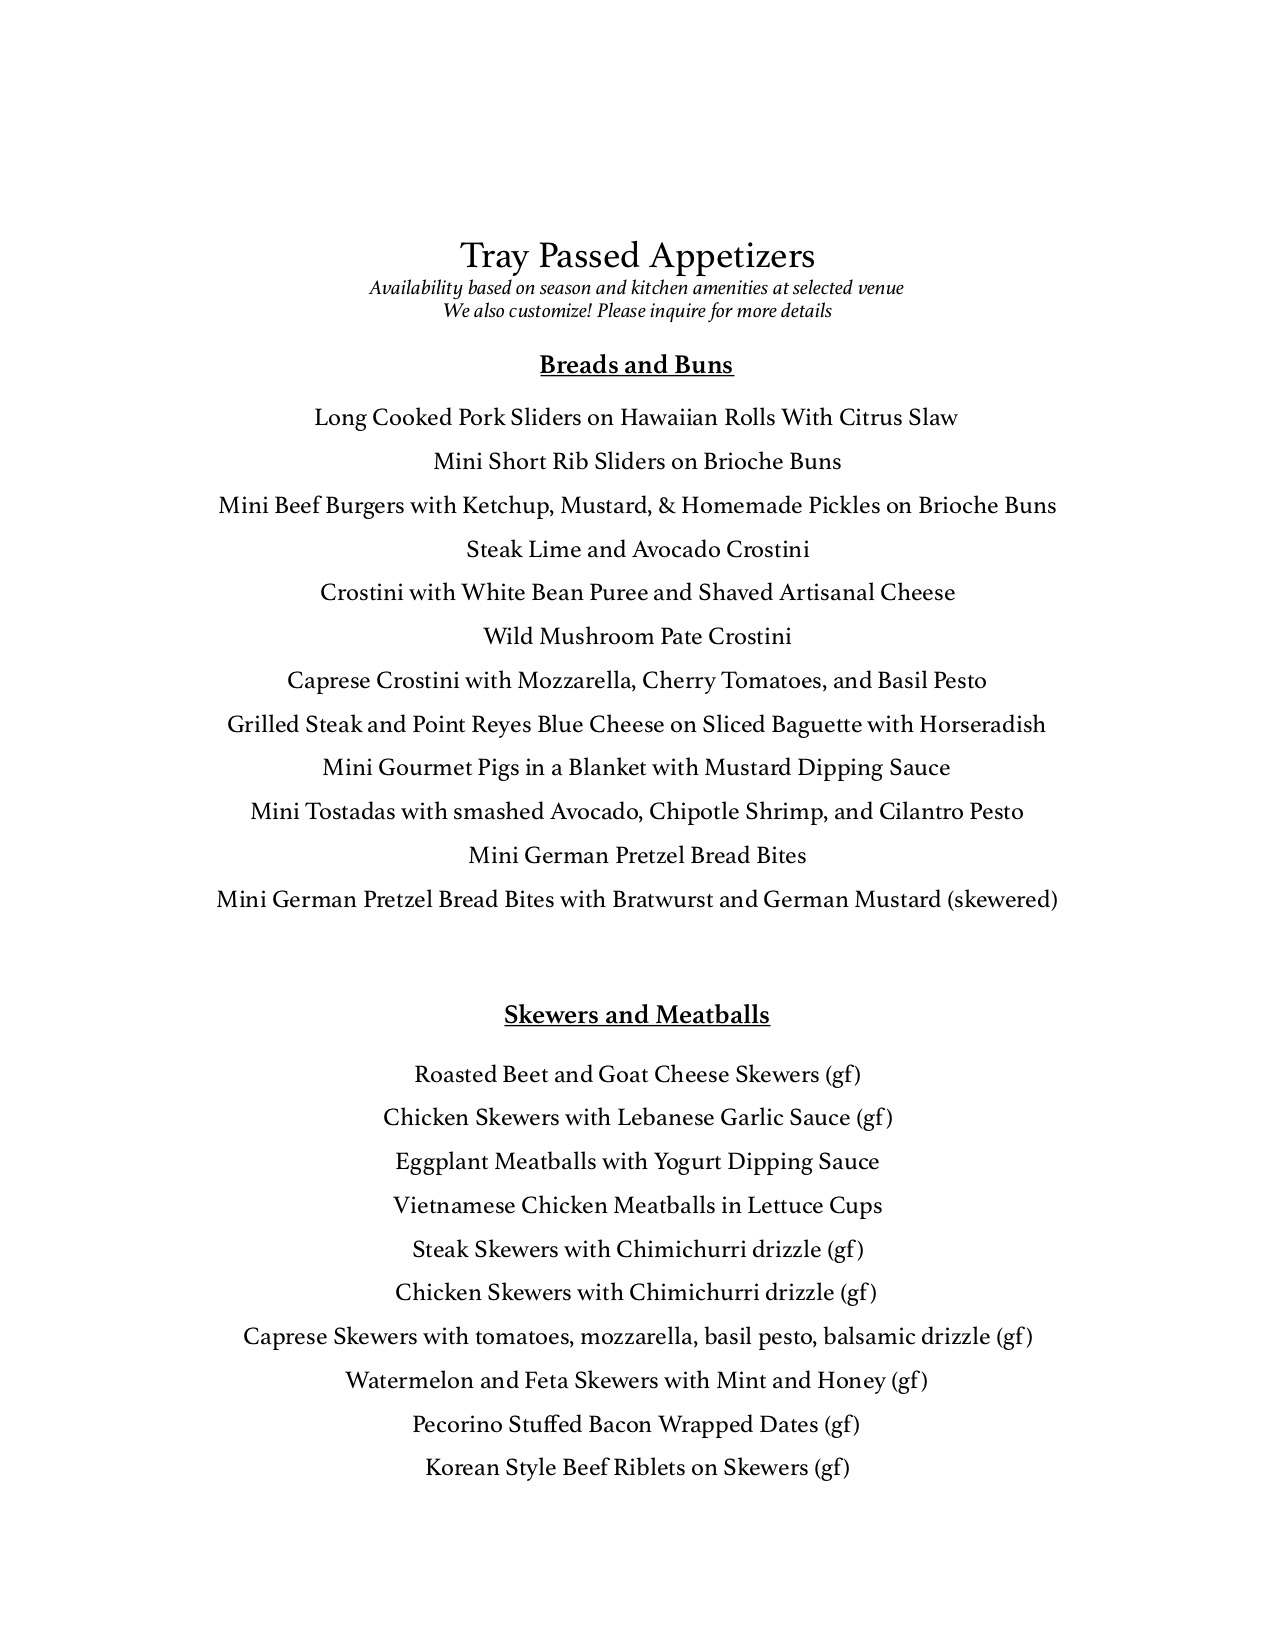 Spotted Hen Full Service and Wedding Menu 3.jpg